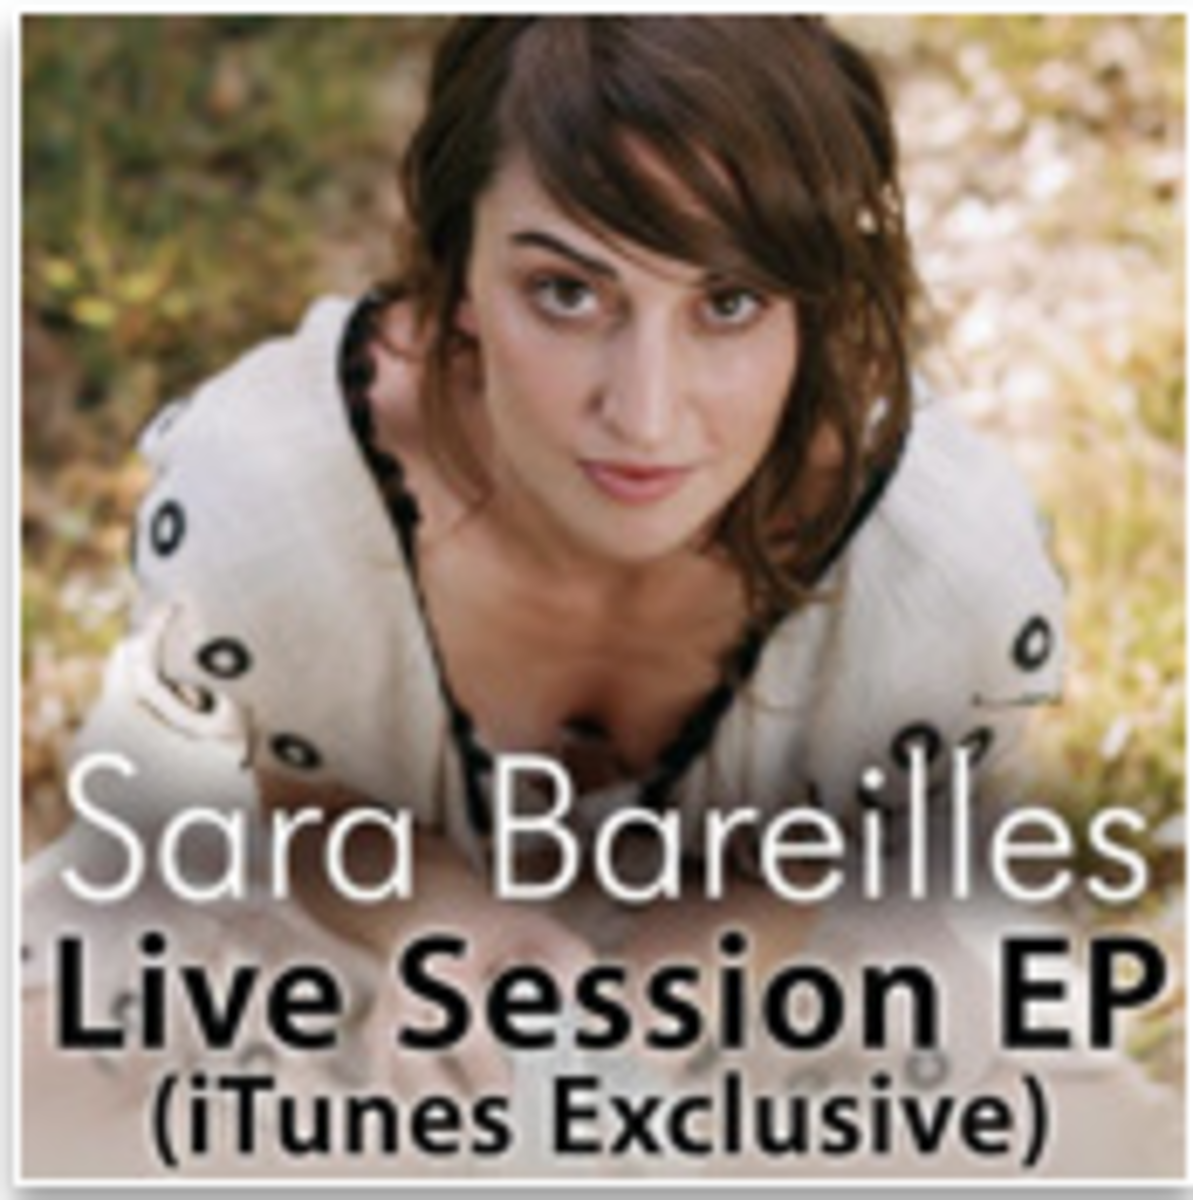 Sara Bareilles Live Session EP (iTunes Exclusive)